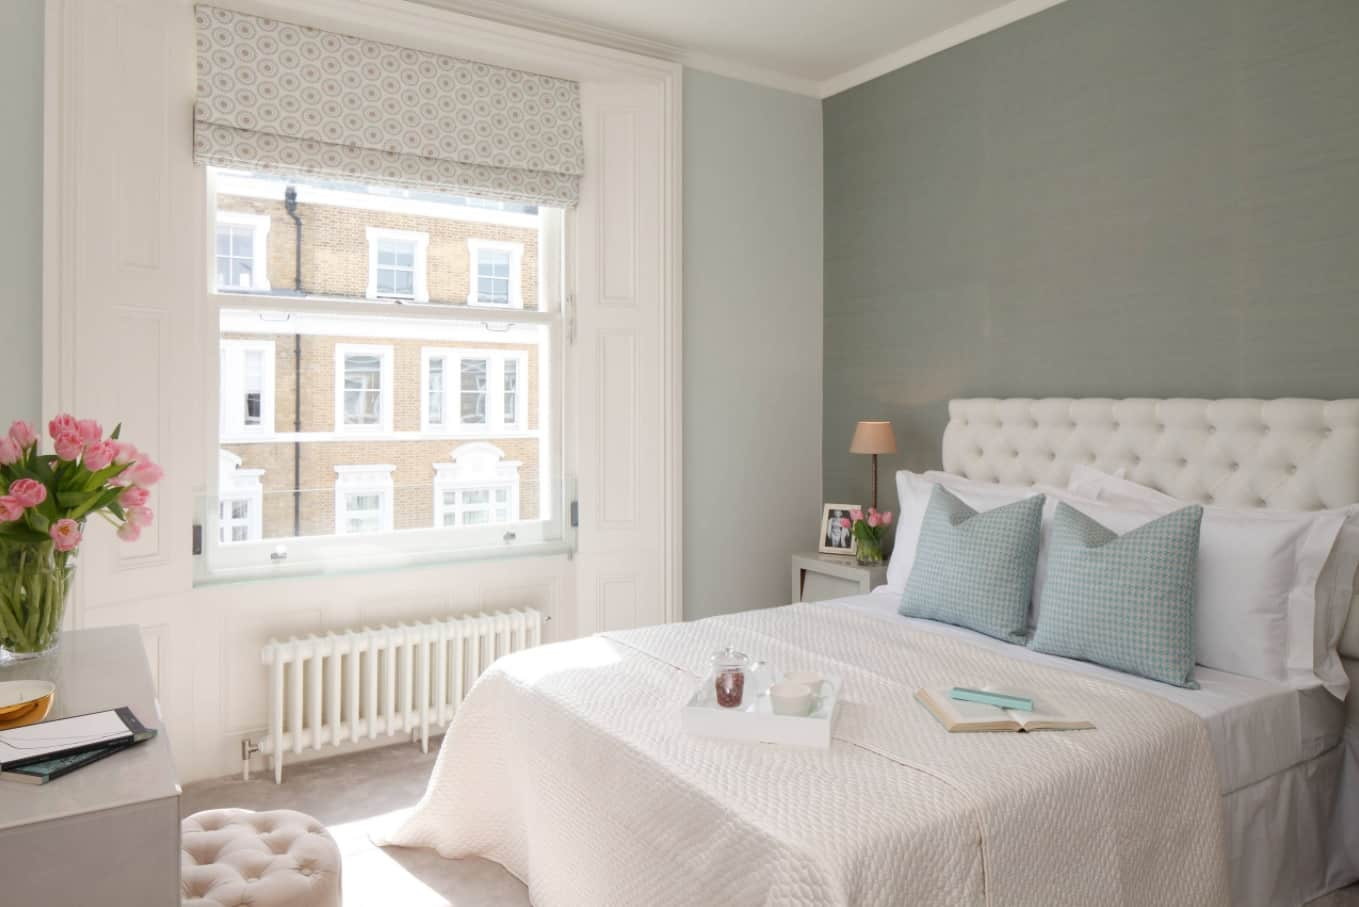 How to Get Your Home Ready for Winter. Smooth and cozy bedroom interior with pastel colored walls